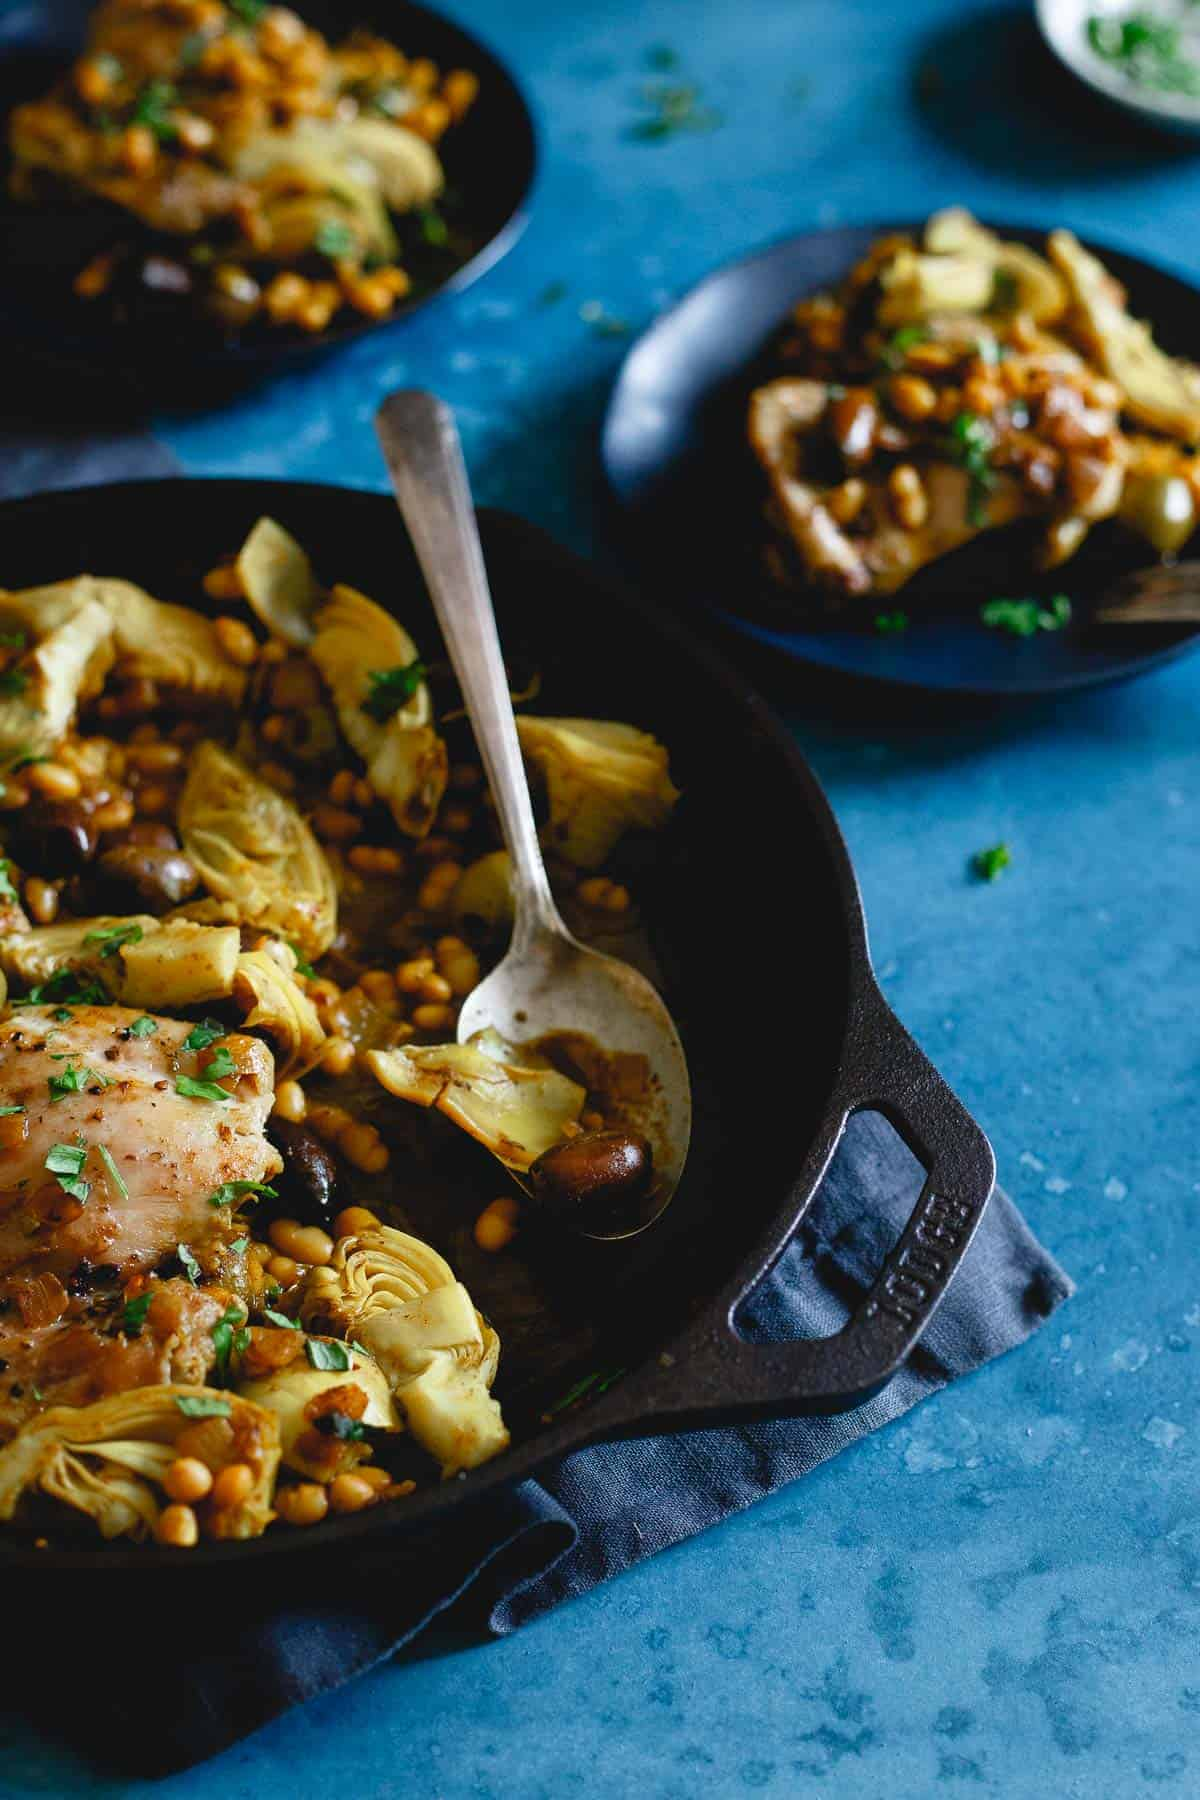 Chicken artichoke and olives in a skillet with a spoon - skillet dinners